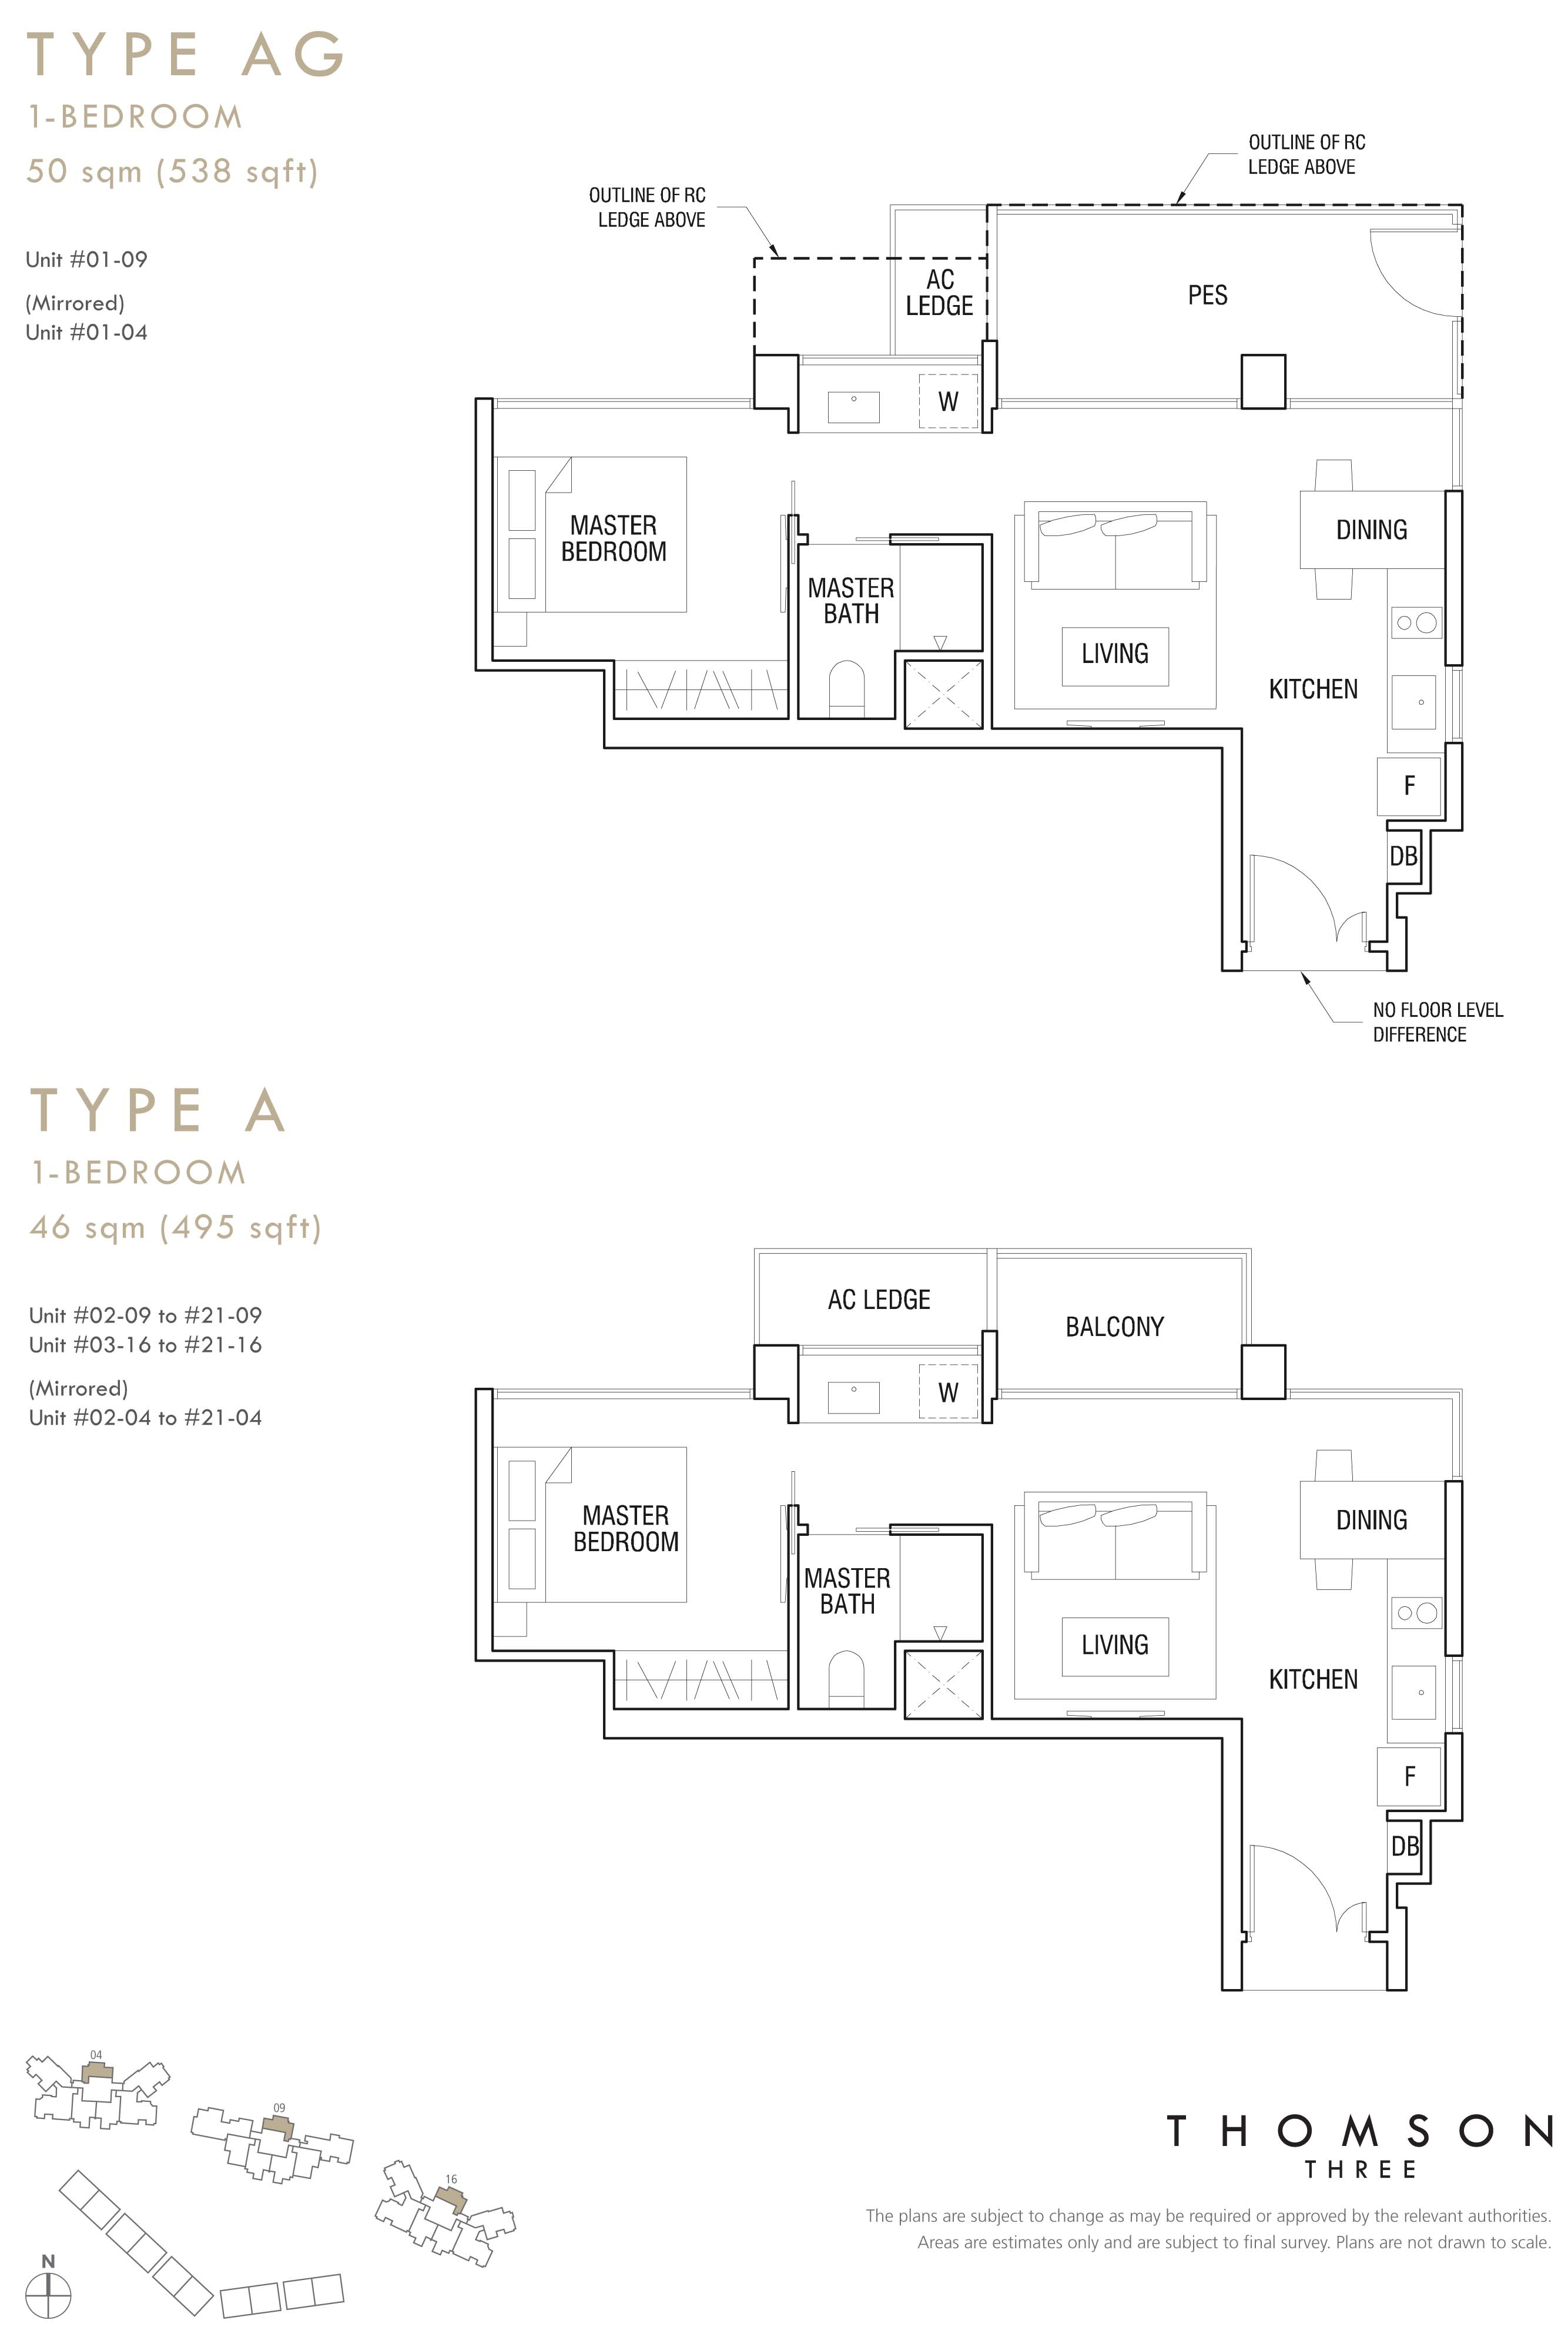 1 BR (Type A, Type AG)